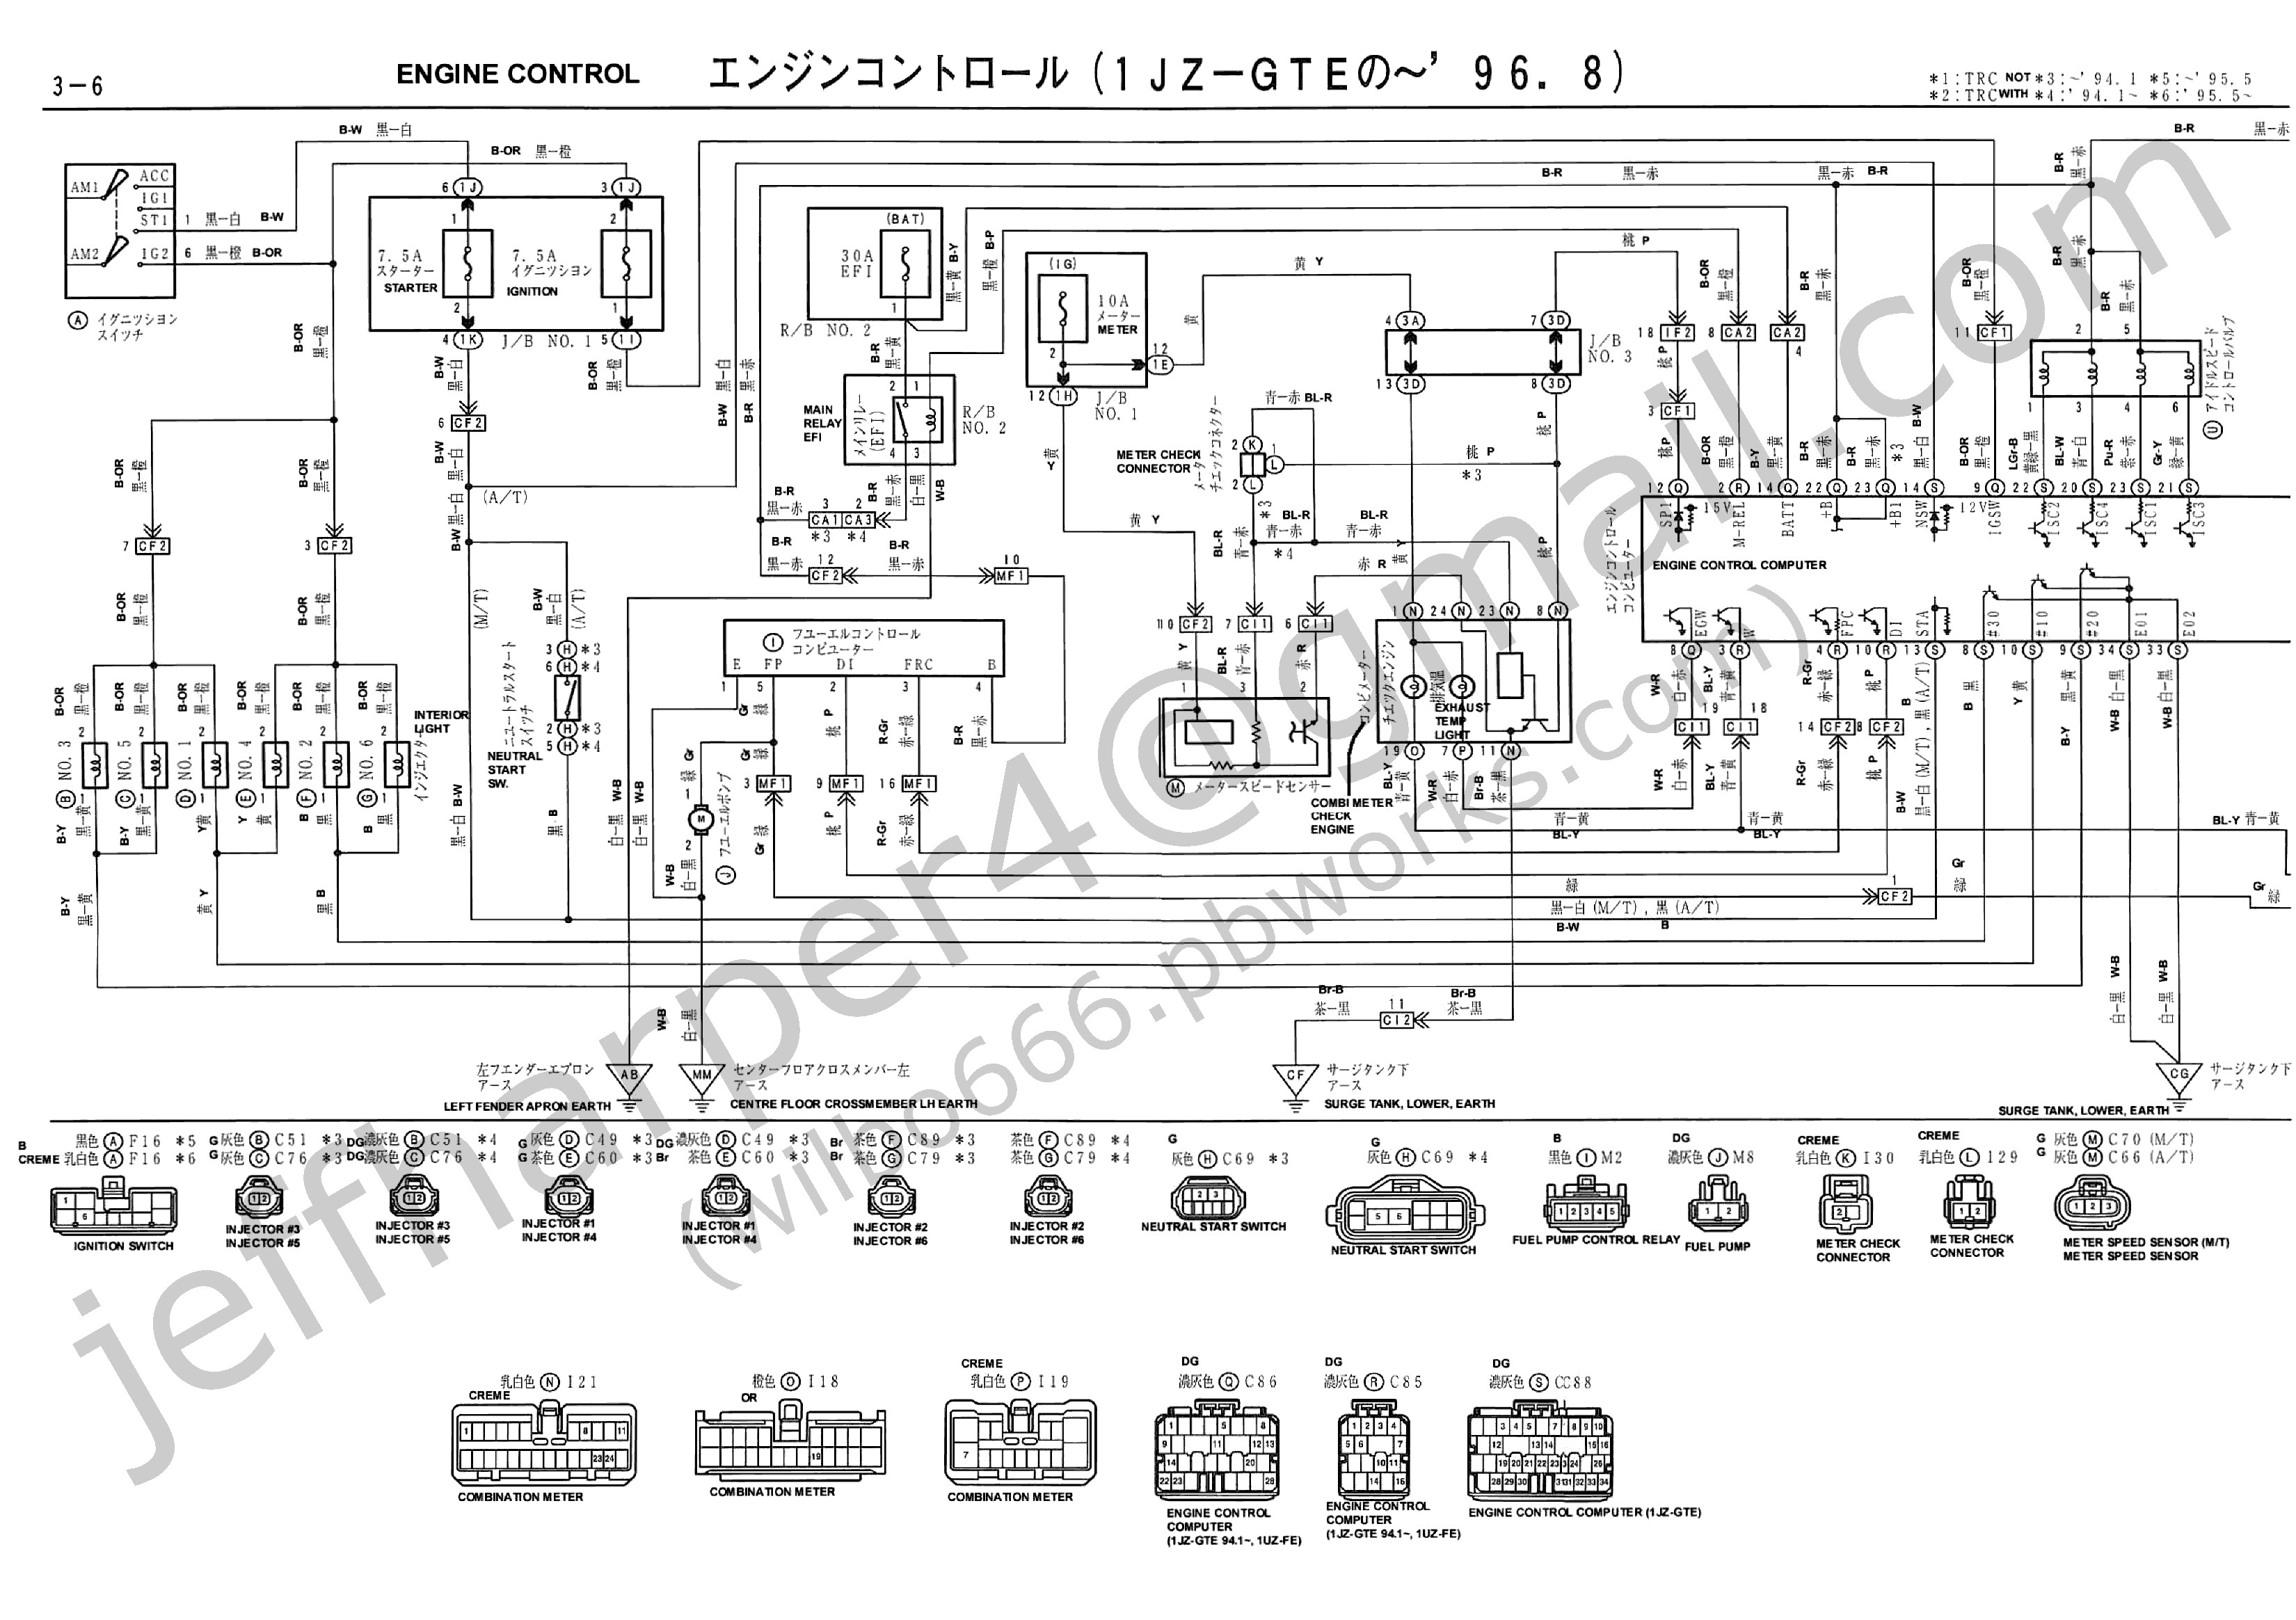 93 Camry Engine Parts Diagram Reinvent Your Wiring 96 Toyota 92 V6 Get Free Image About Wire Rh Quickcav Co 1993